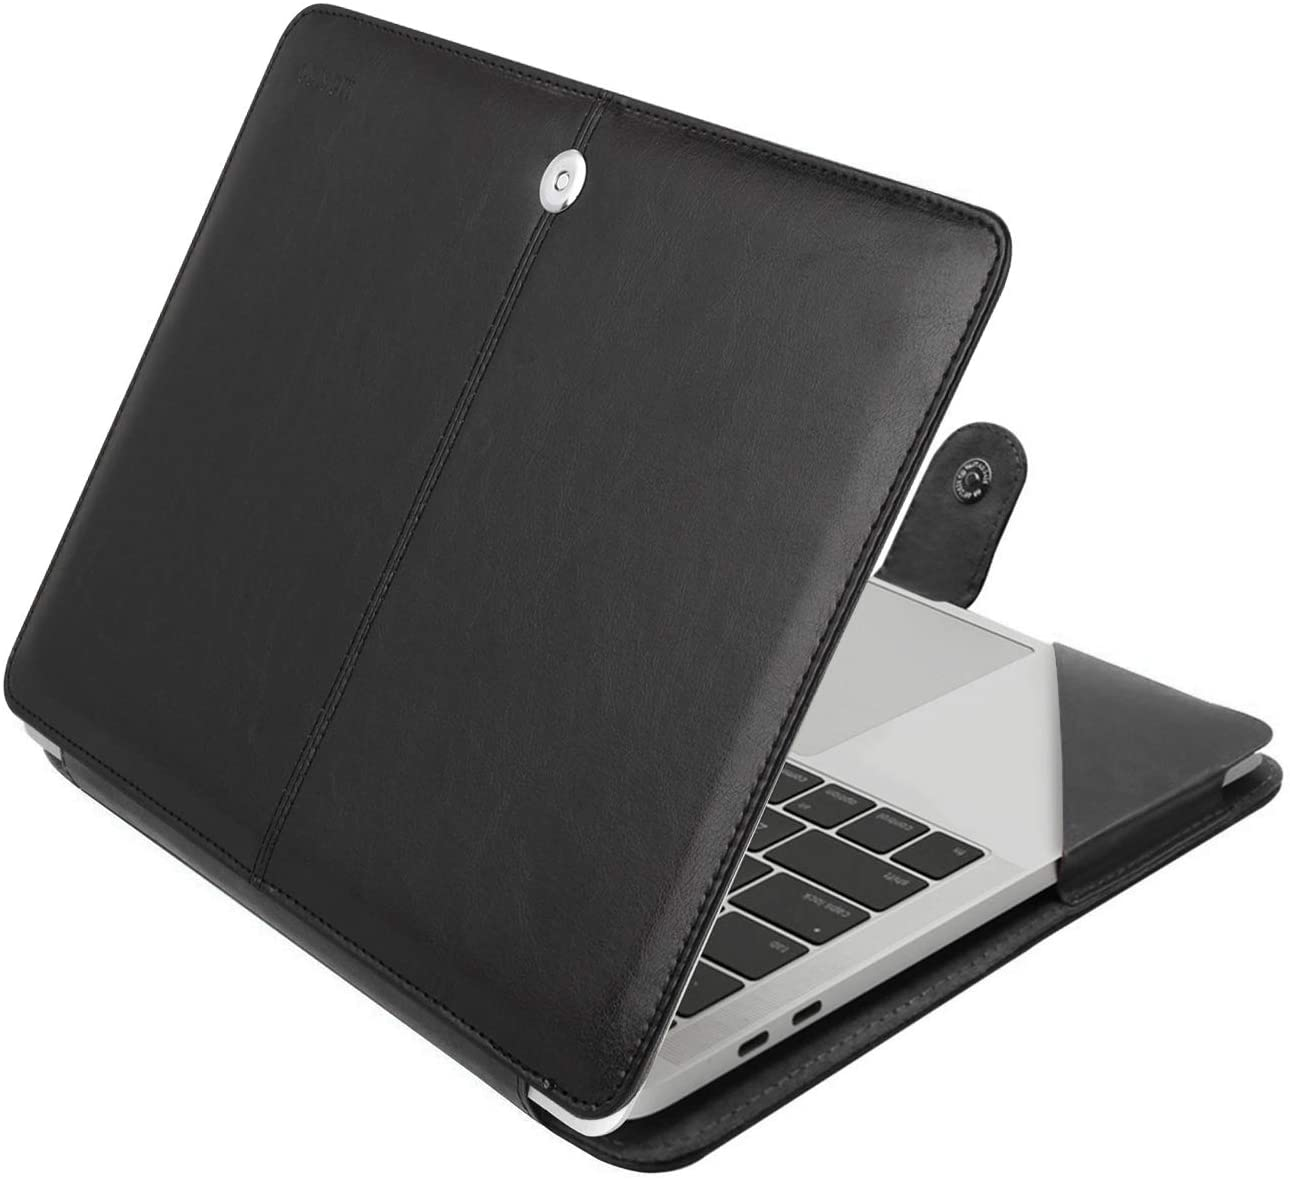 MOSISO Case Compatible with 2020-2018 MacBook Air 13 A2179 A1932 / 2020-2016 MacBook Pro 13 A2251/A2289/A2159/A1989/ A1706/A1708, Premium PU Leather Folio Protective Stand Cover Sleeve, Black